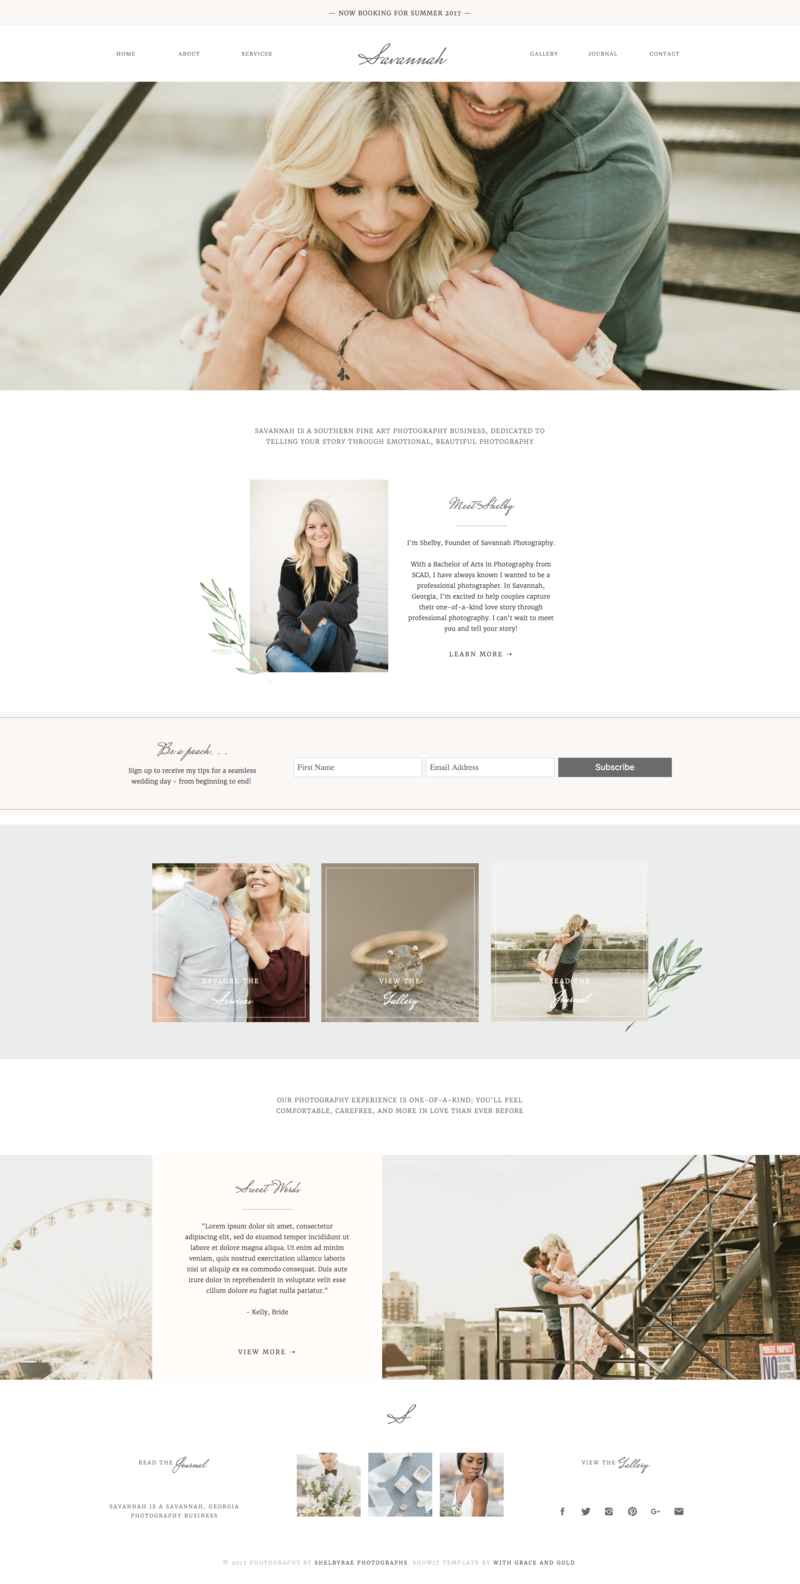 01 - Home - With Grace and Gold - Branding, Web Design, and Education for Creative Women in Business - Showit Design, Designs, Designer, Theme, Themes, Template, Templates